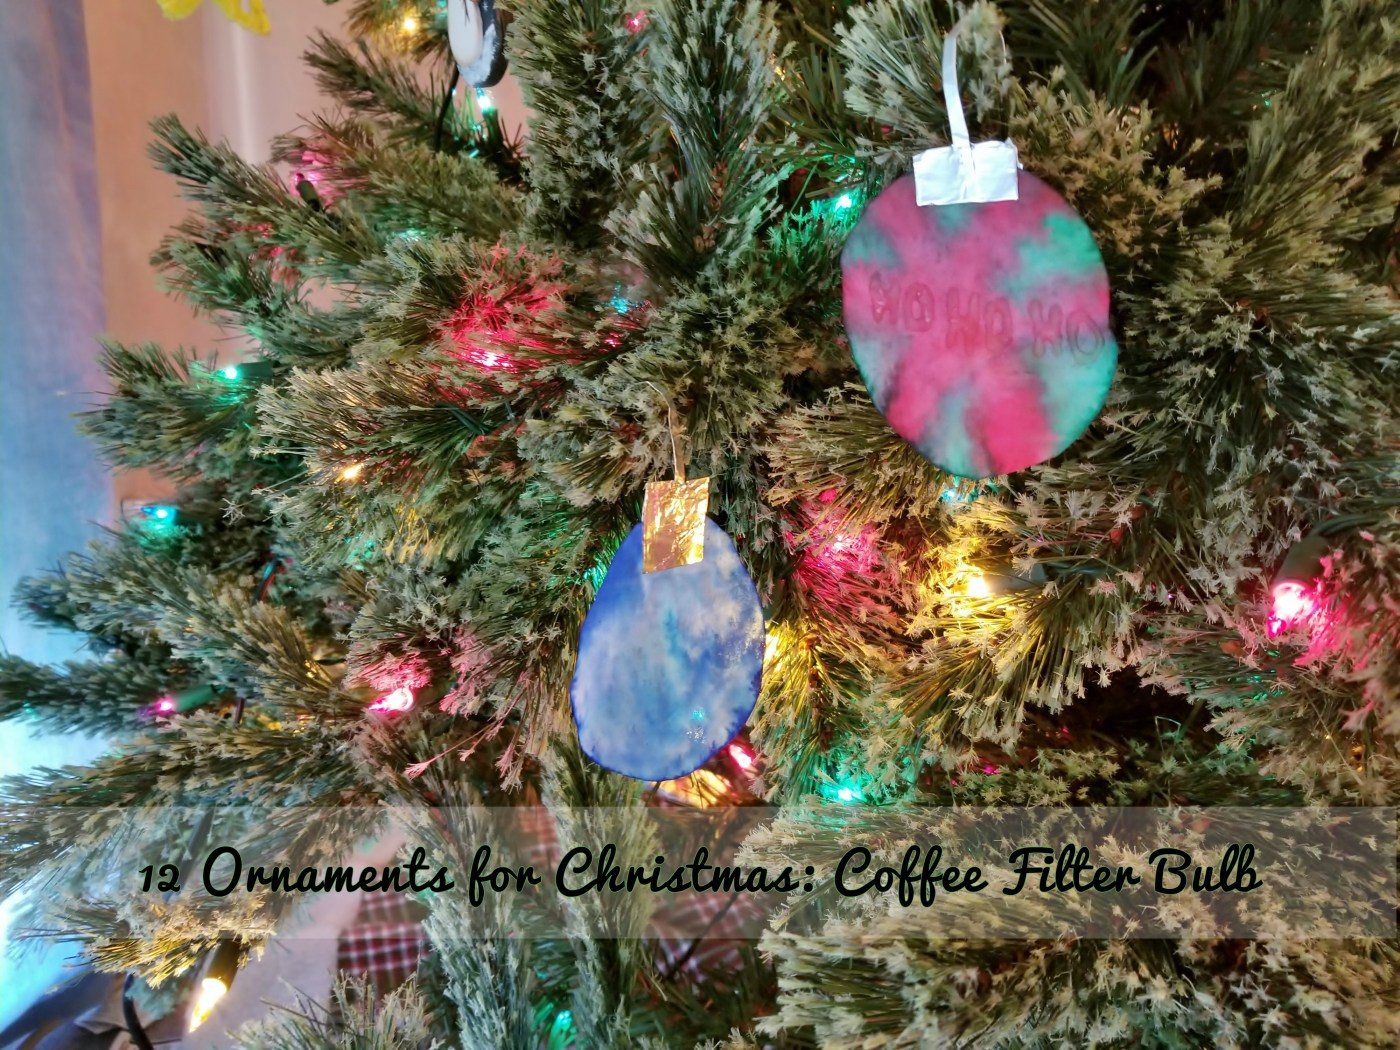 Coffee Christmas Tree Ornaments.12 Ornaments For Christmas Coffee Filter Bulb